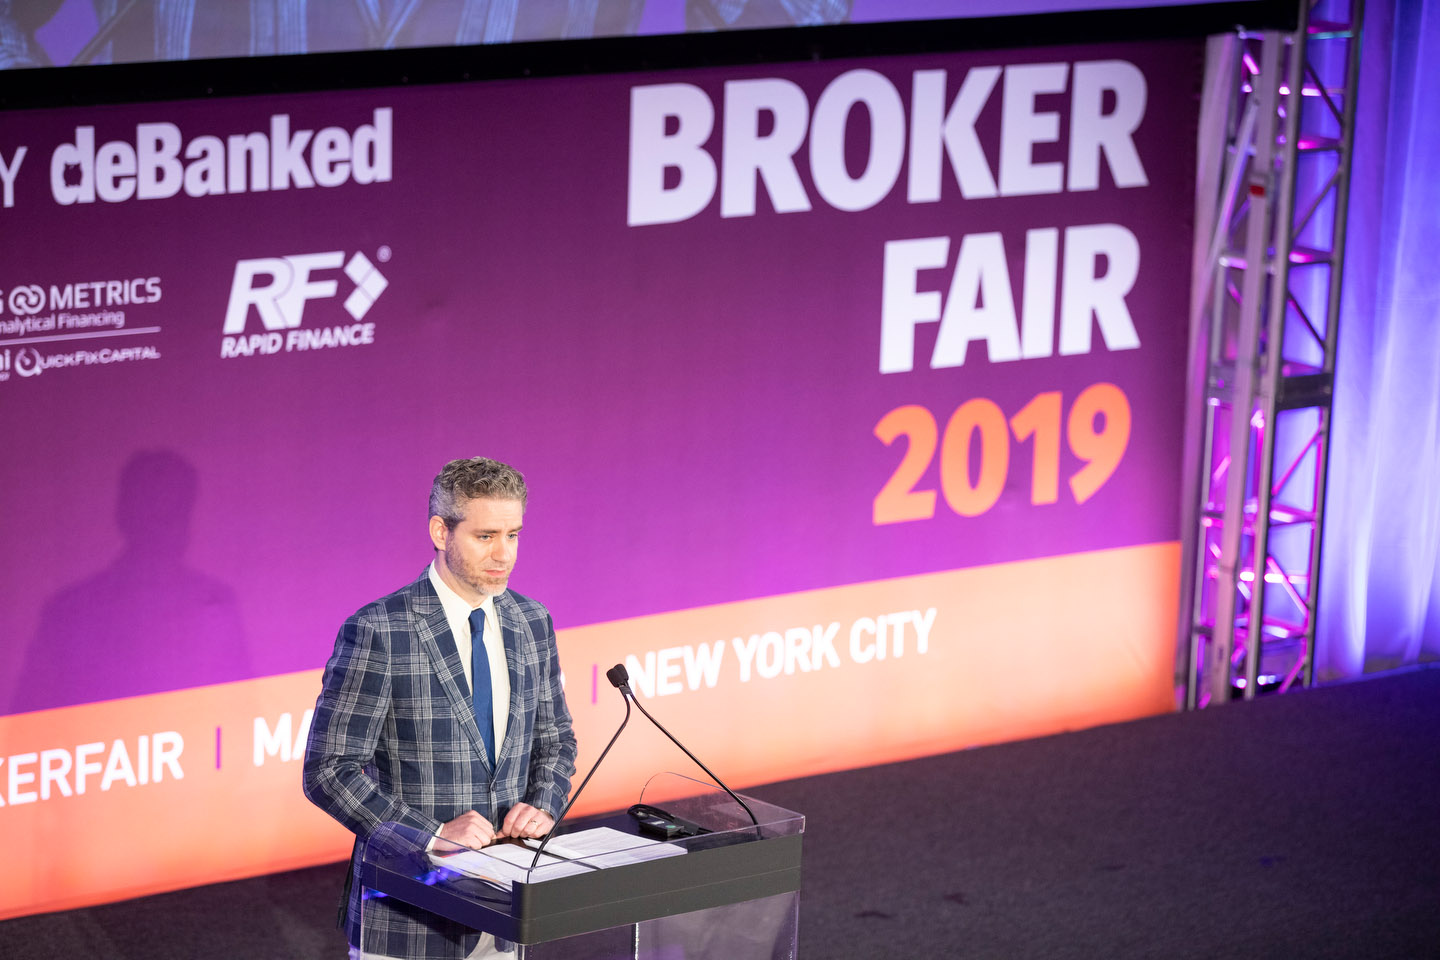 Broker Fair 2019 - Presented by deBanked - 367